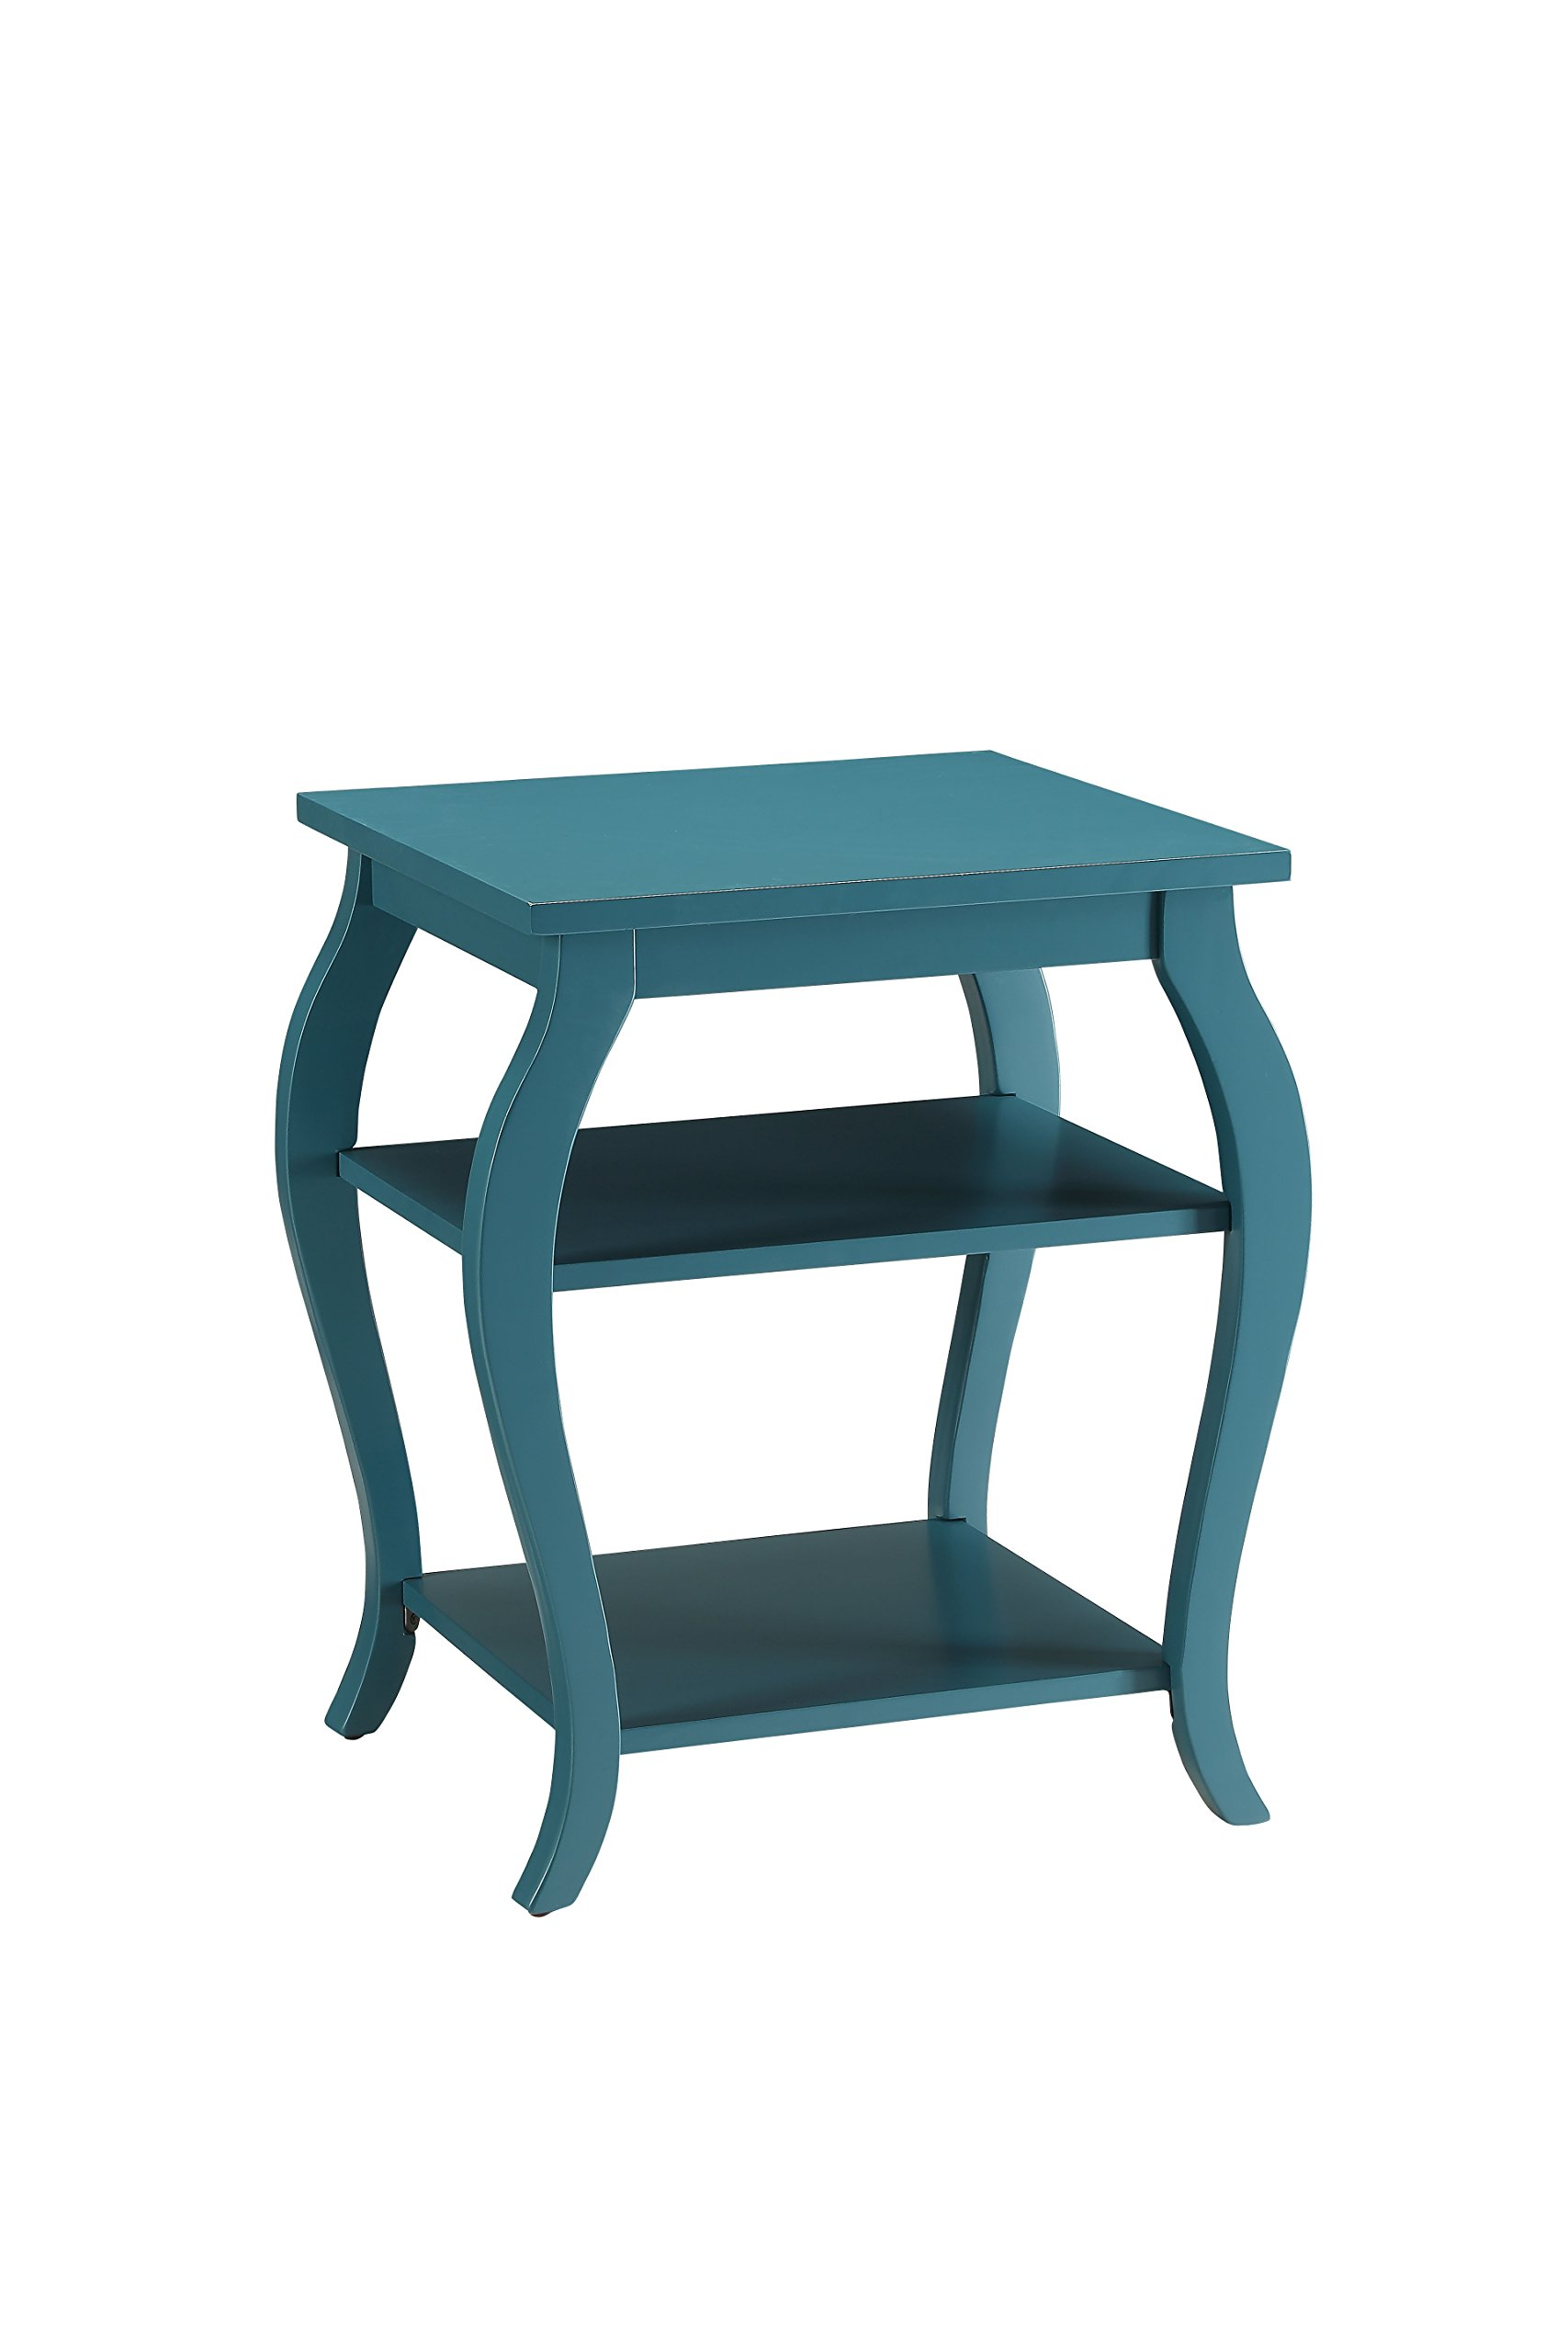 ACME Furniture 82832 Becci End Table, One Size, Teal - Square Leg table With 2 shelves Open storage: 2 shelves - living-room-furniture, living-room, end-tables - 712AH5cMvML -